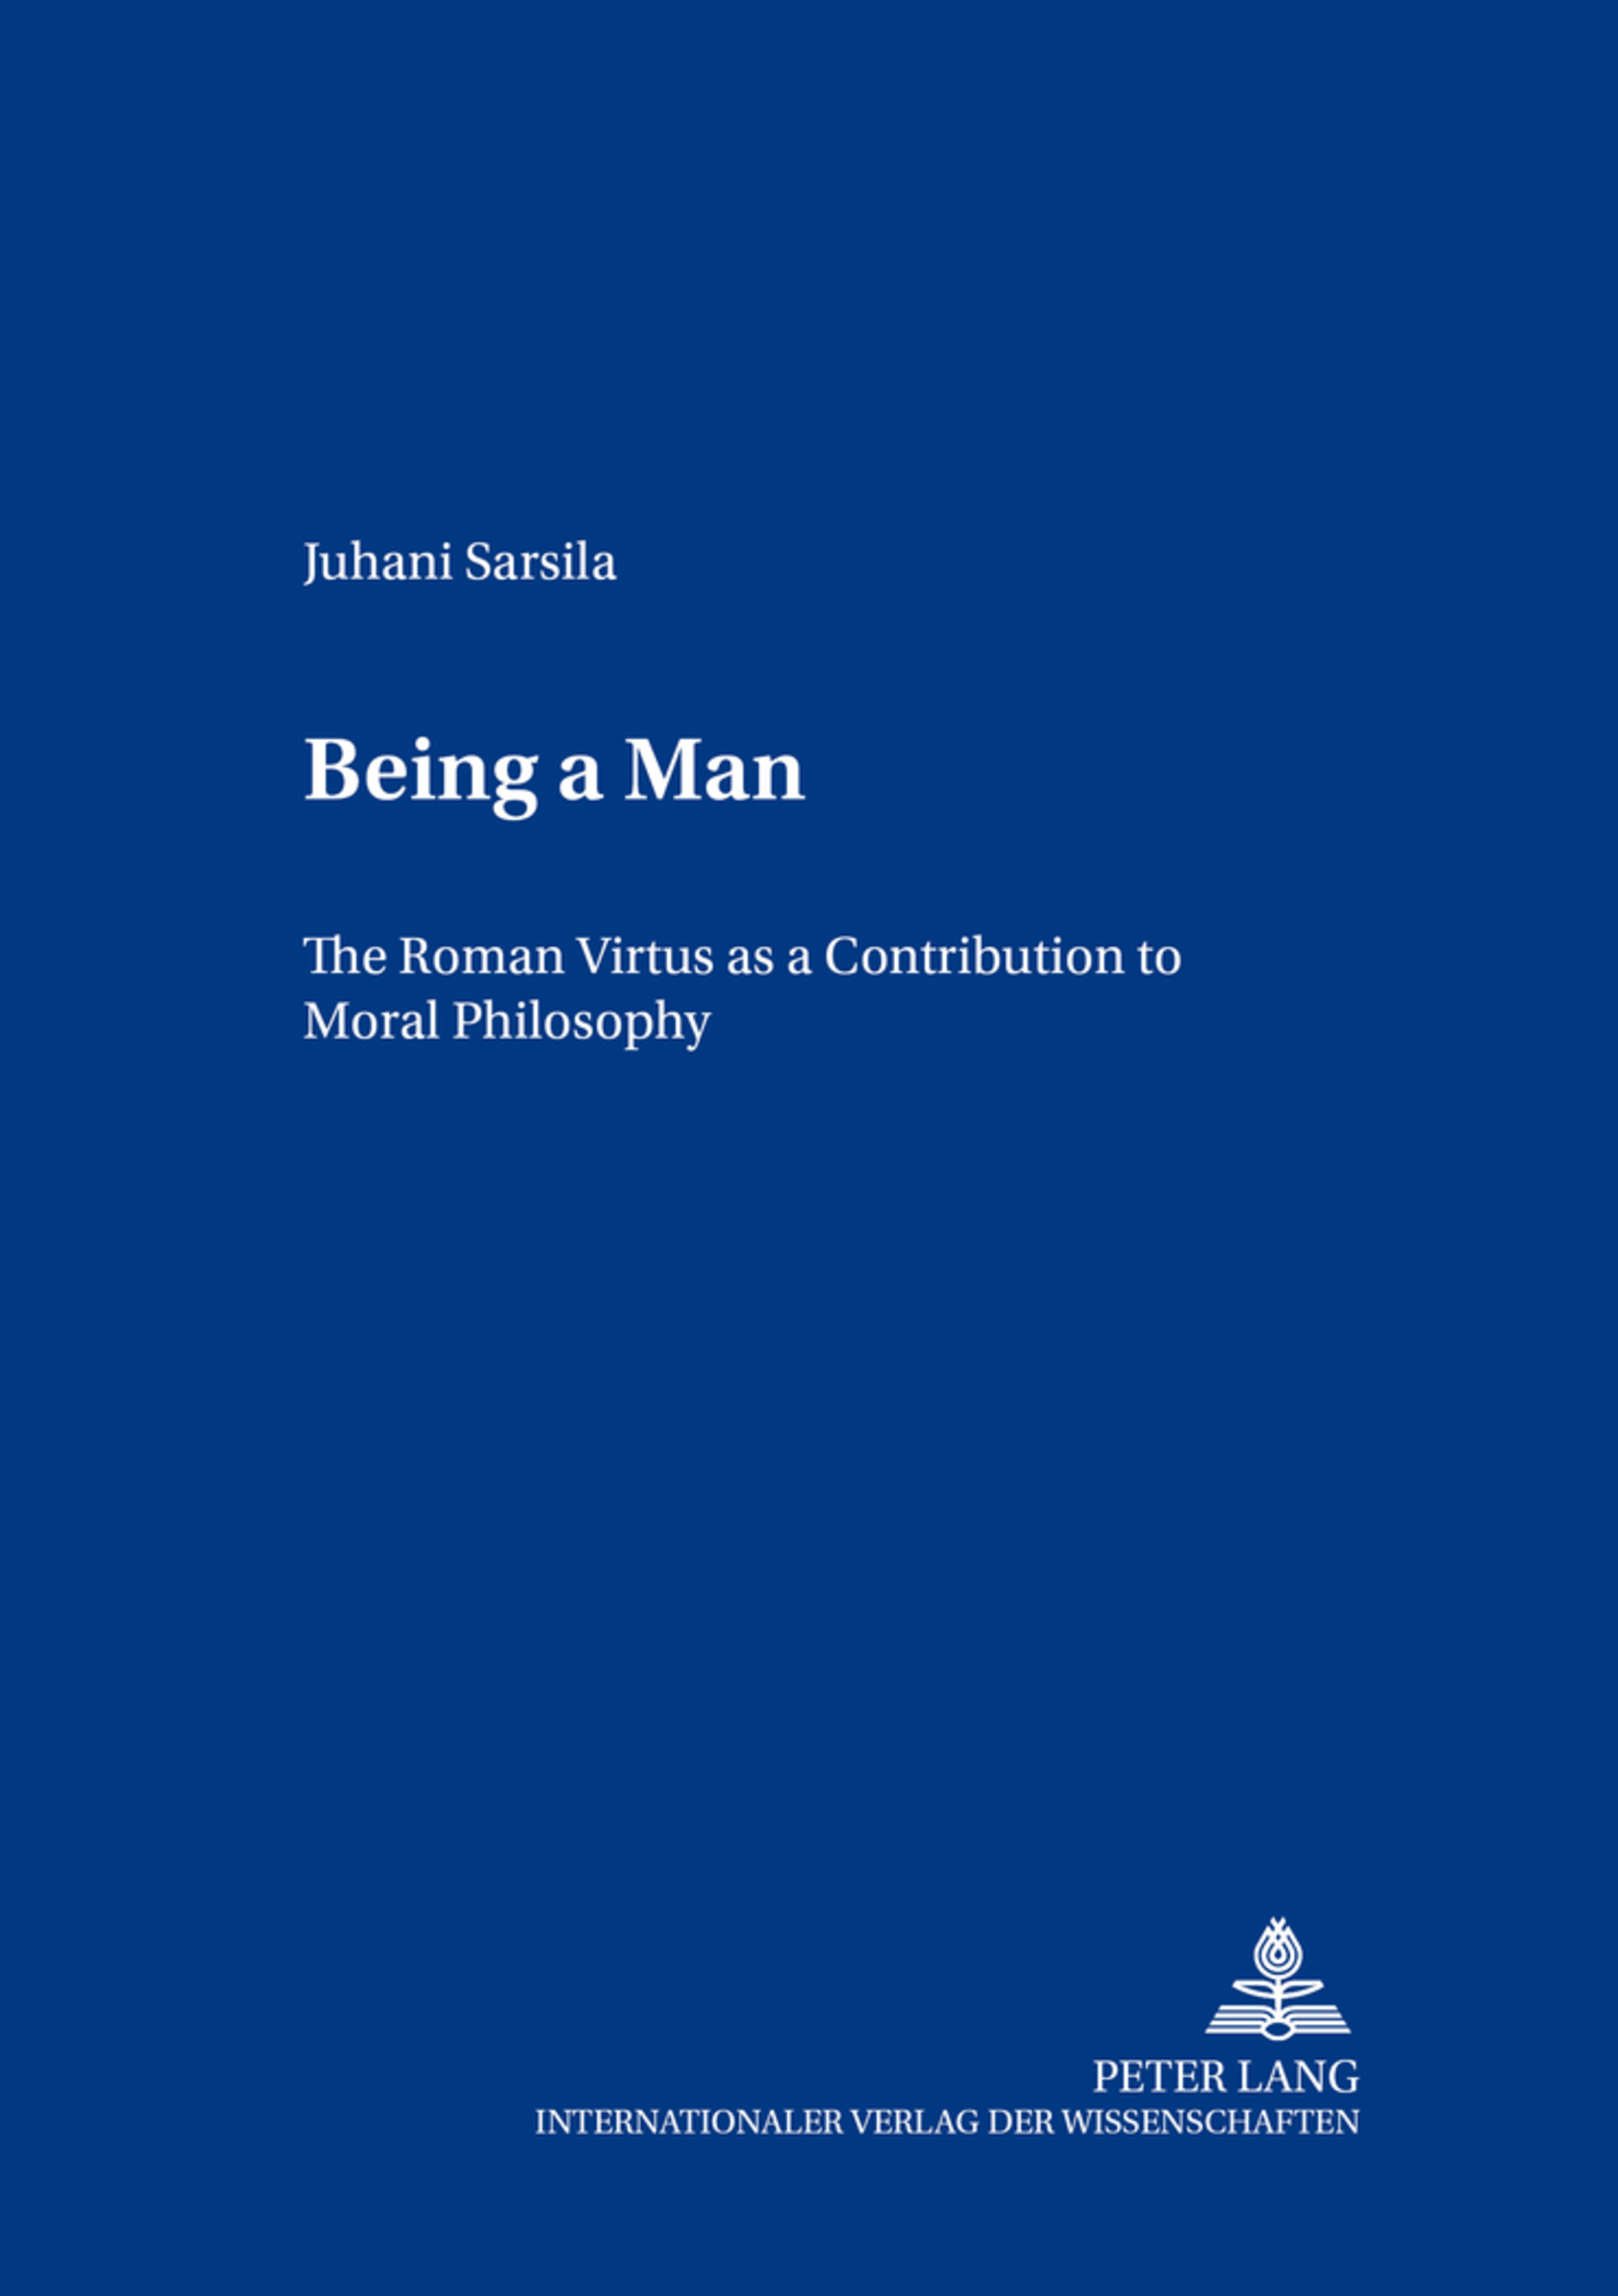 Title: Being a Man